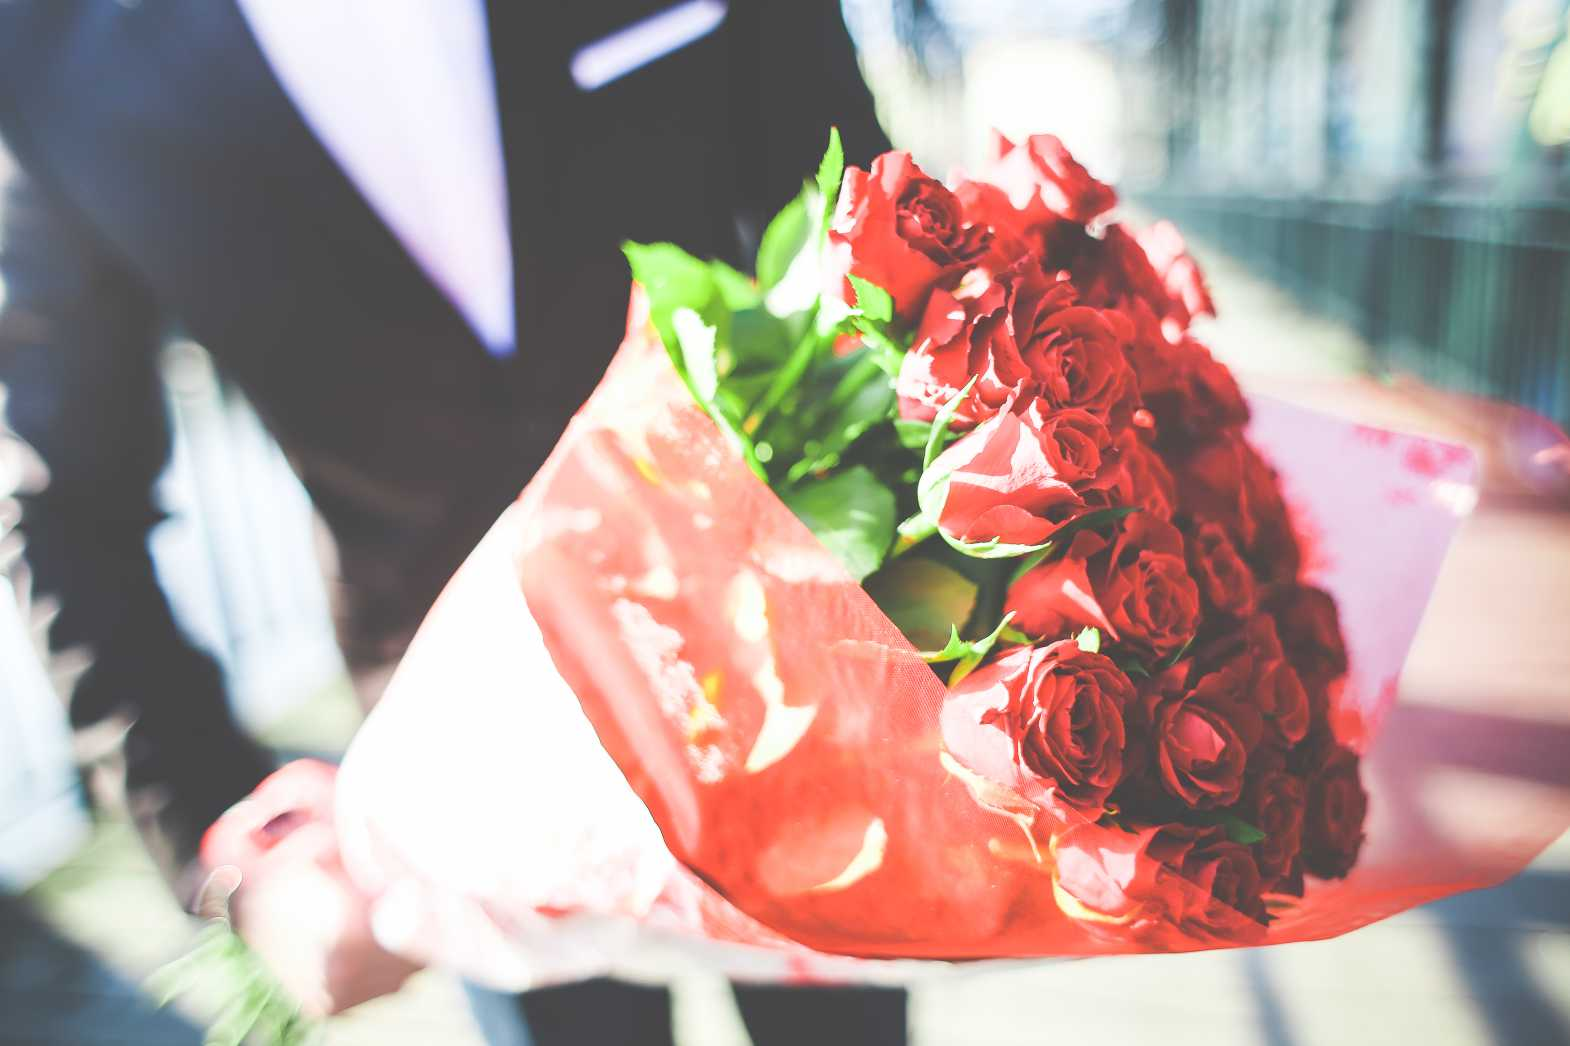 Free stock photo of Gentleman Holding a Bouquet of Roses from picjumbo.com